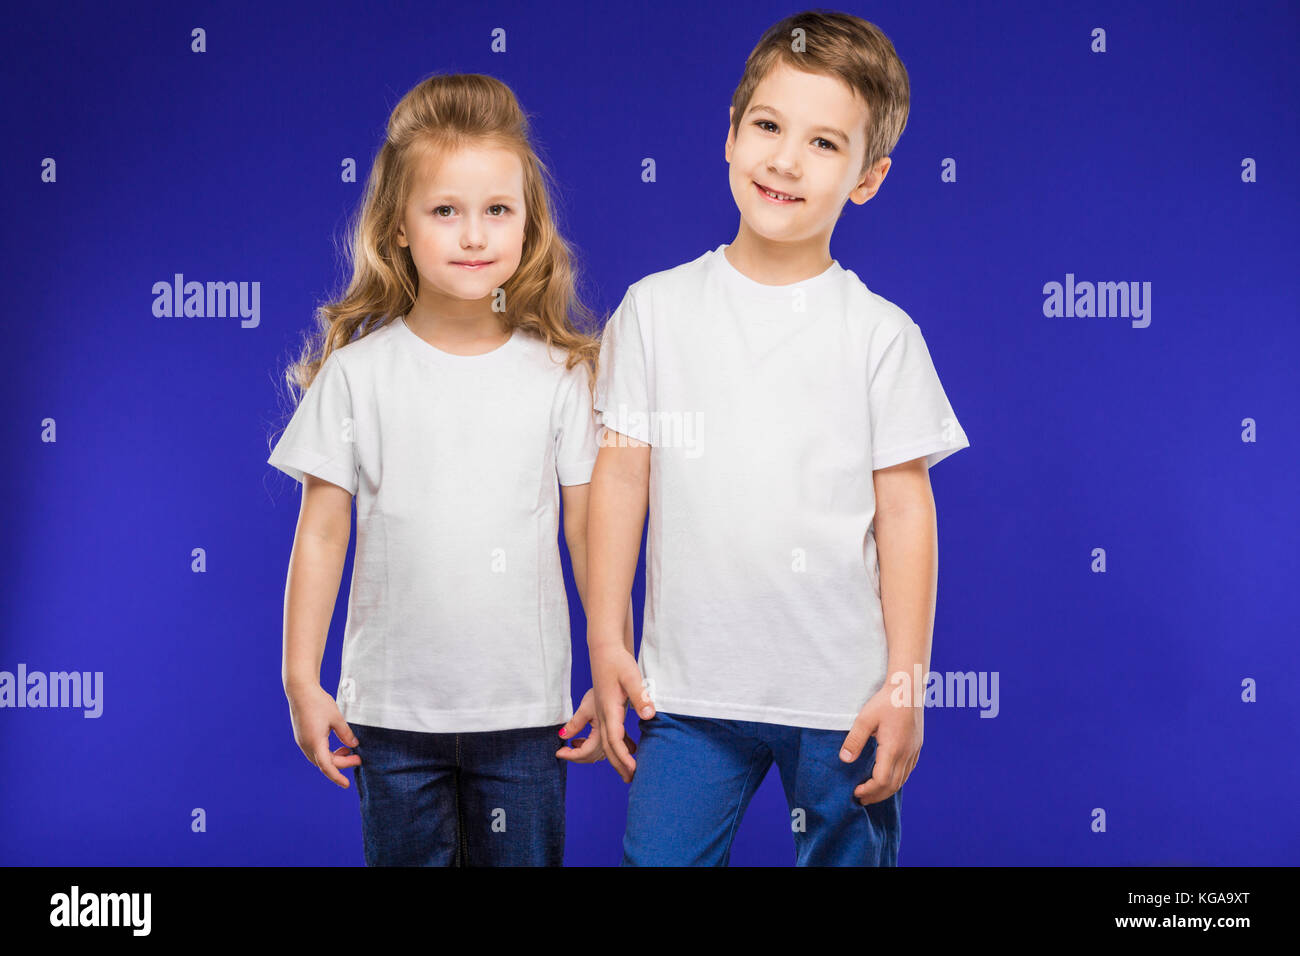 couple of small children - Stock Image